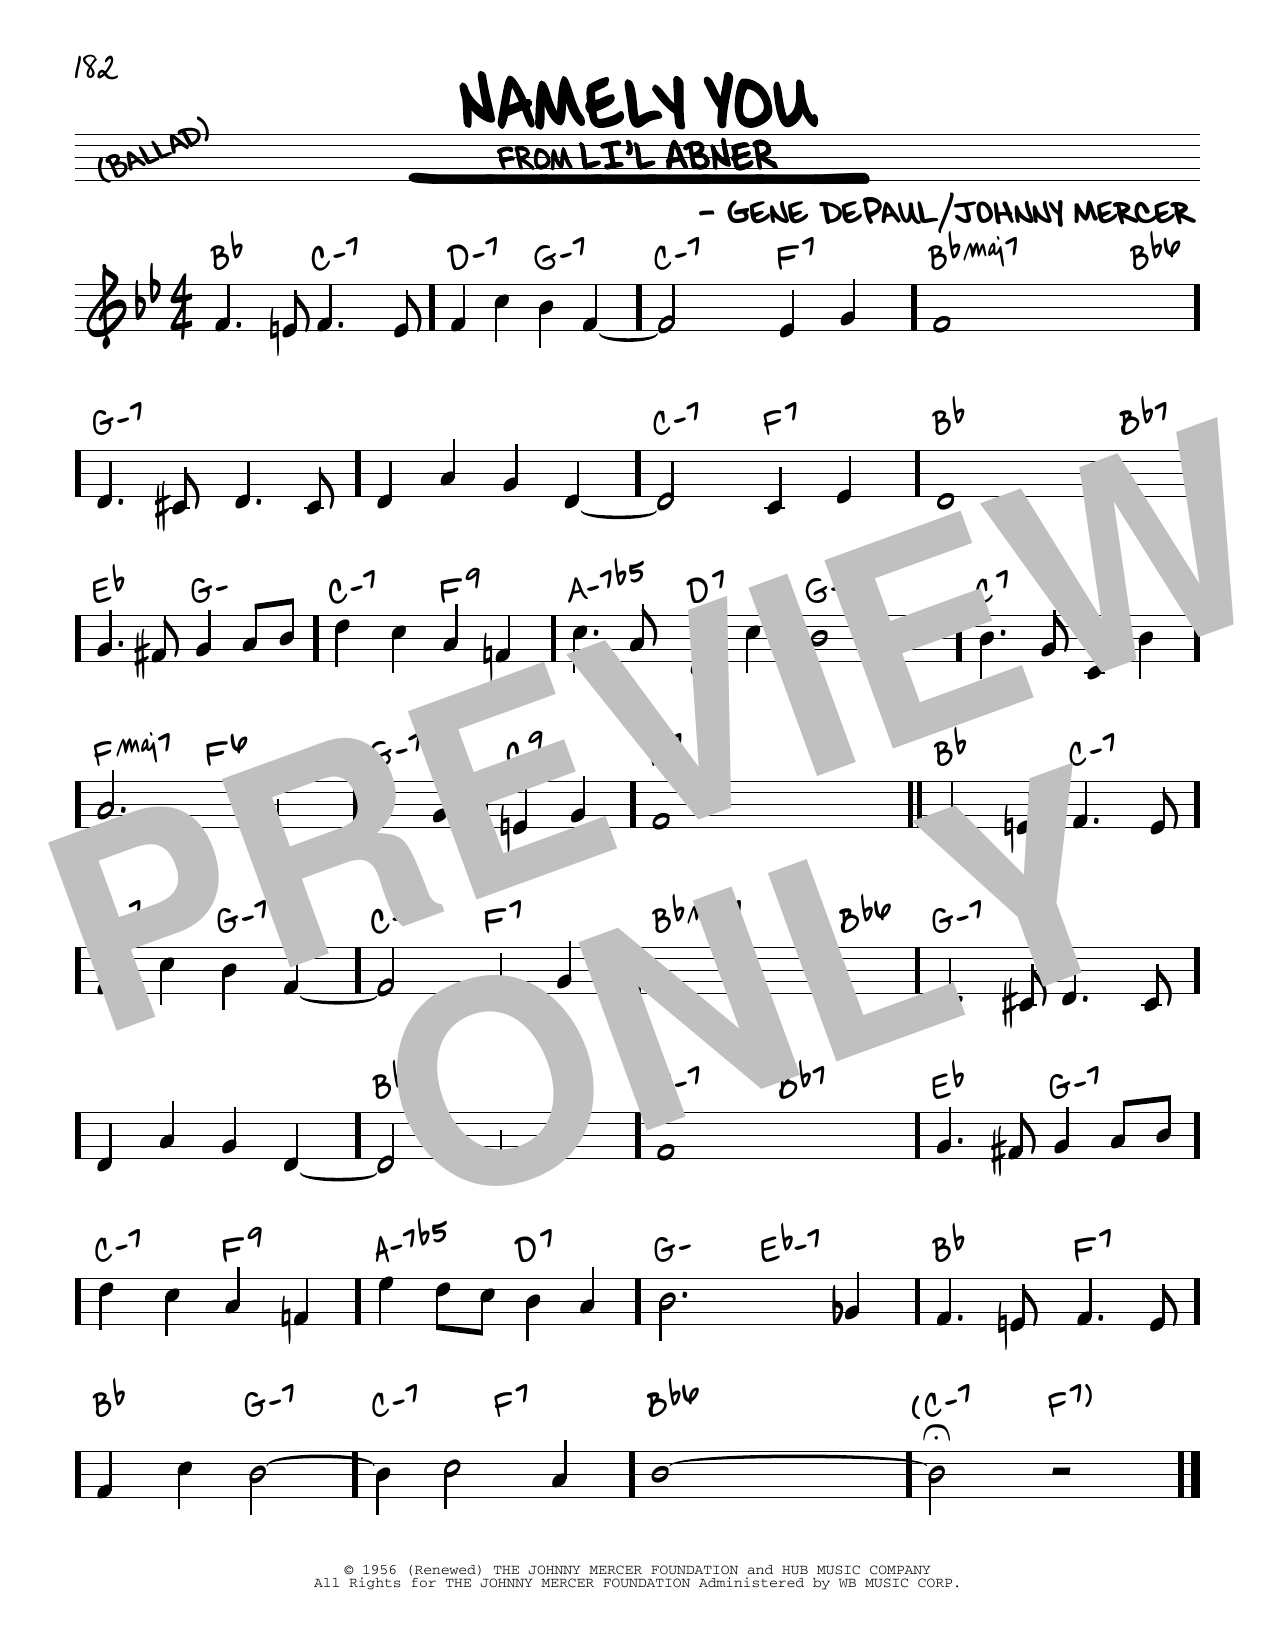 Namely You Sheet Music